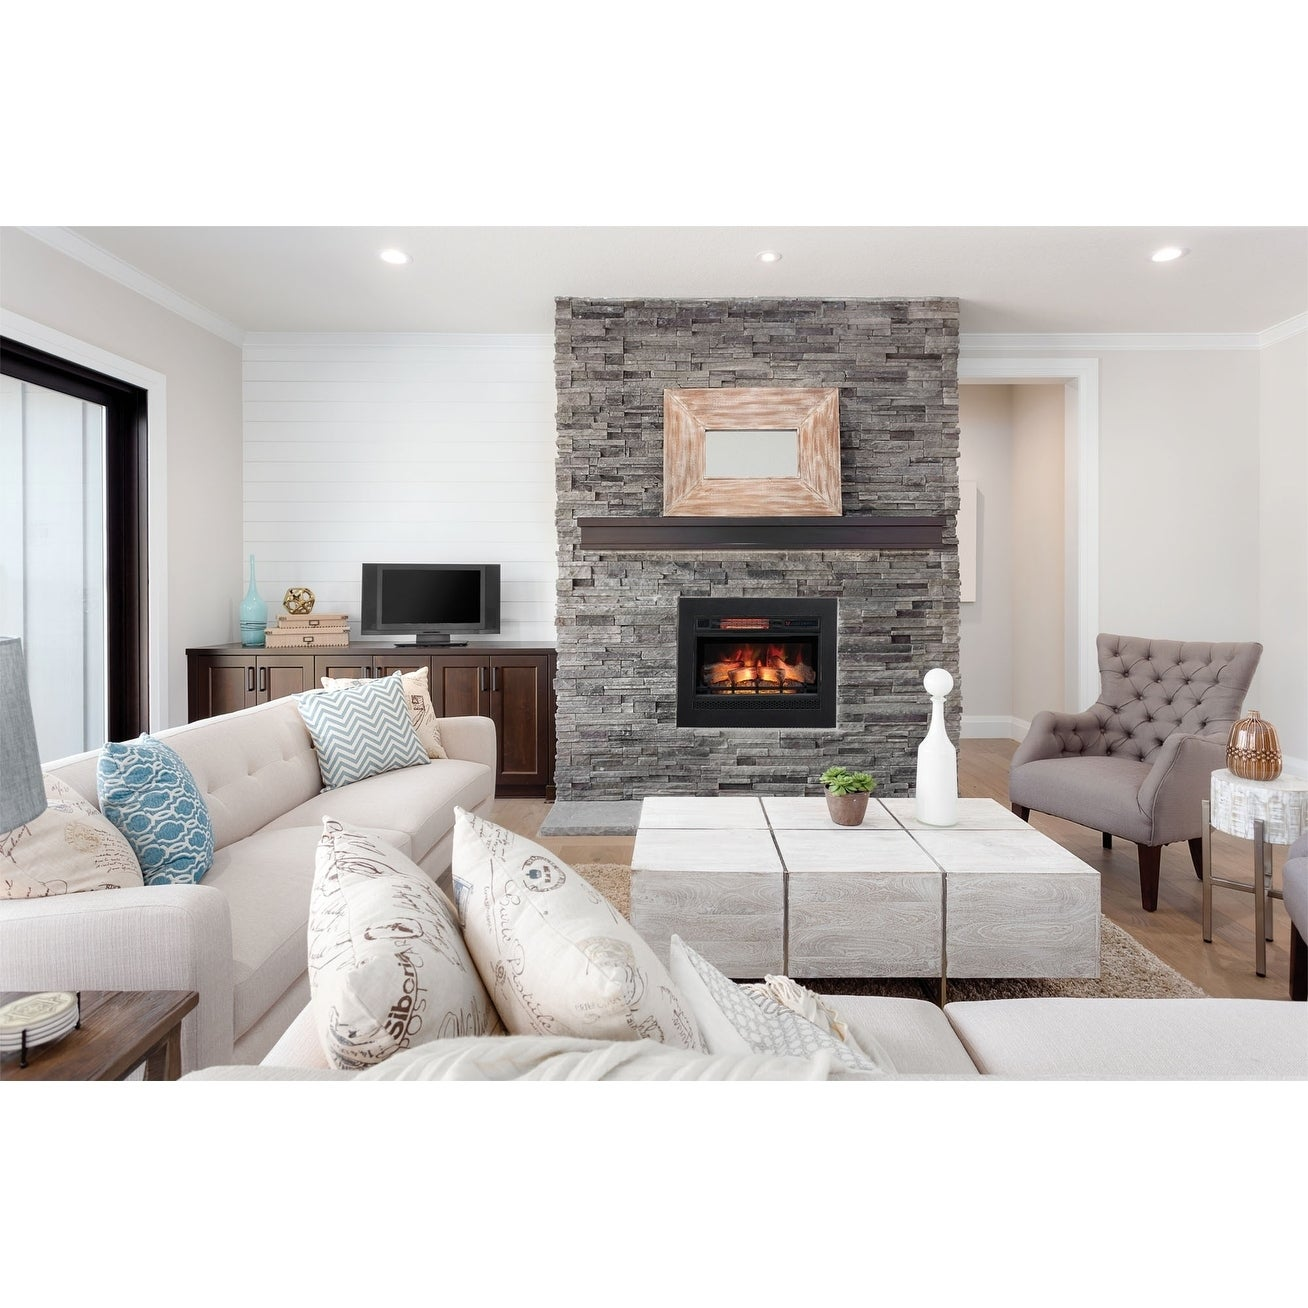 ClassicFlame 26 3D Infrared Quartz Electric Fireplace Insert 2e5276fe 9e71 40c0 882b 31ba ff